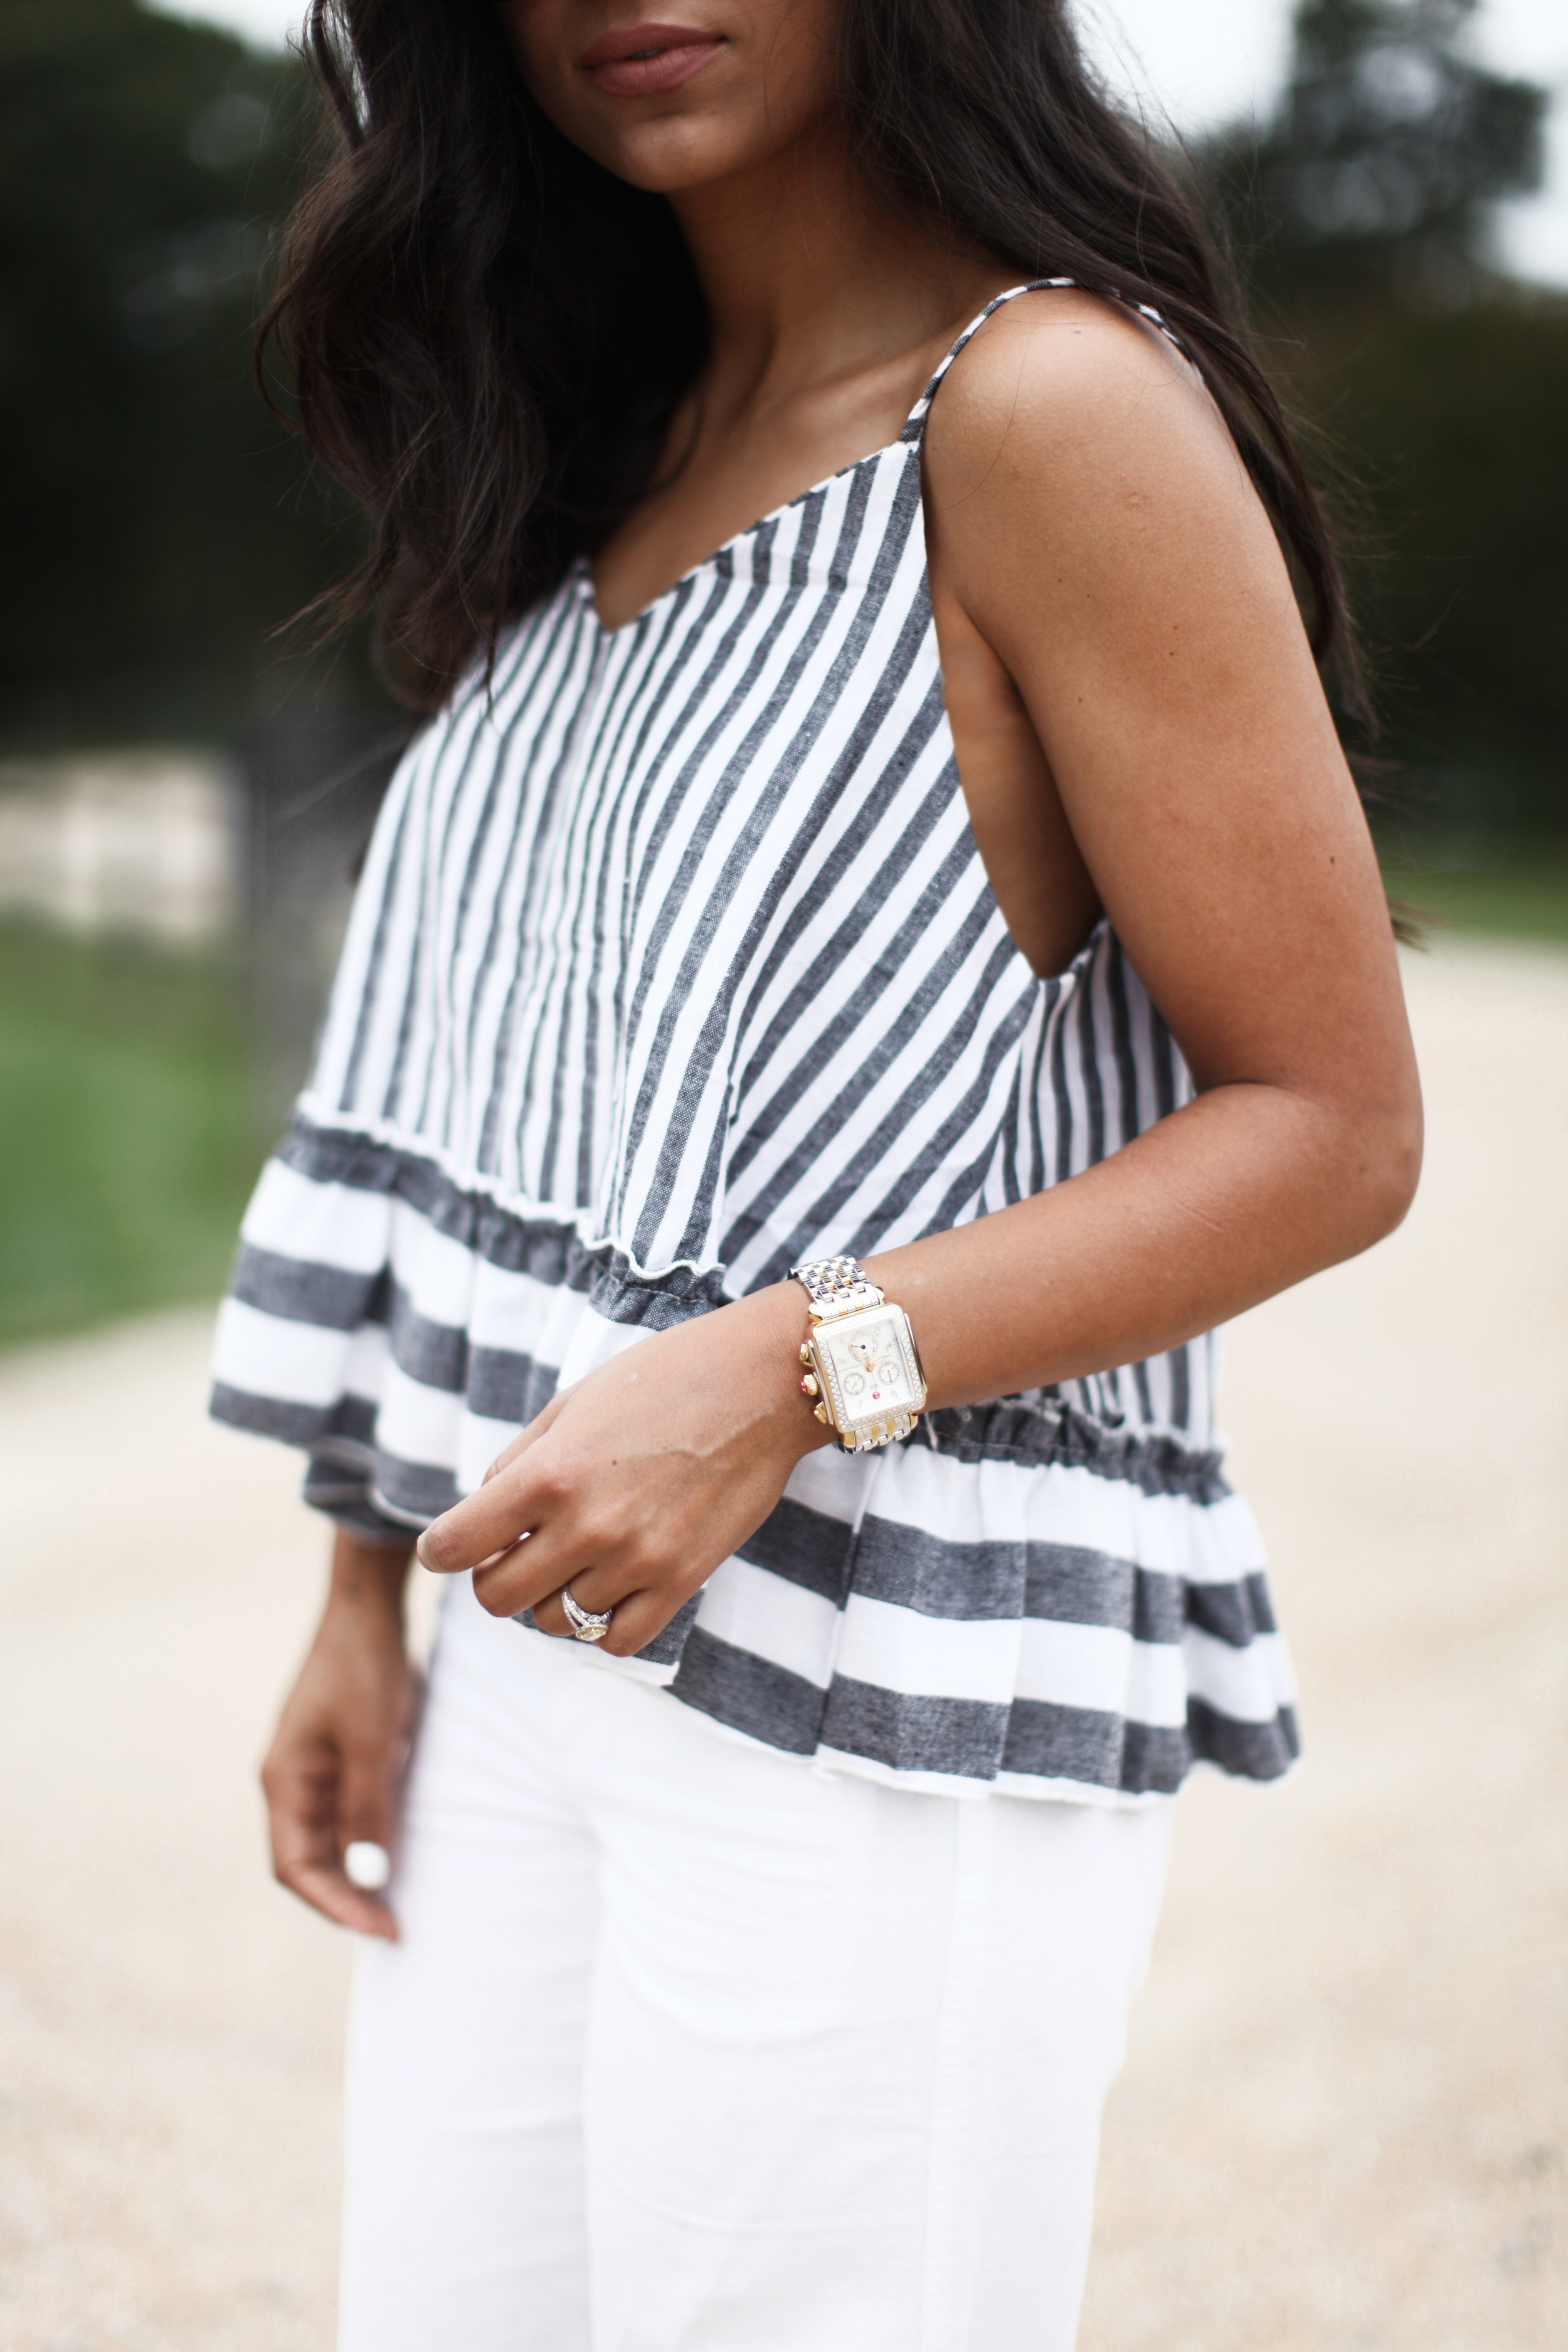 PEPLUM STRIPES - How cute is this top? It's everything a top should be: flowy, striped and ruffled! Shop Peplum Here I plan on wearing this top in transition to Fall layering it with a duster or a long sleeve underneath. My favorite thing about it other than its aesthetics is the price! I absolutely love partnering up with SheIn specifically because of their affordability. As much as I love clothes, I don't want my entire wallet to be spent on clothes! & They always have ahhhmazing sales!